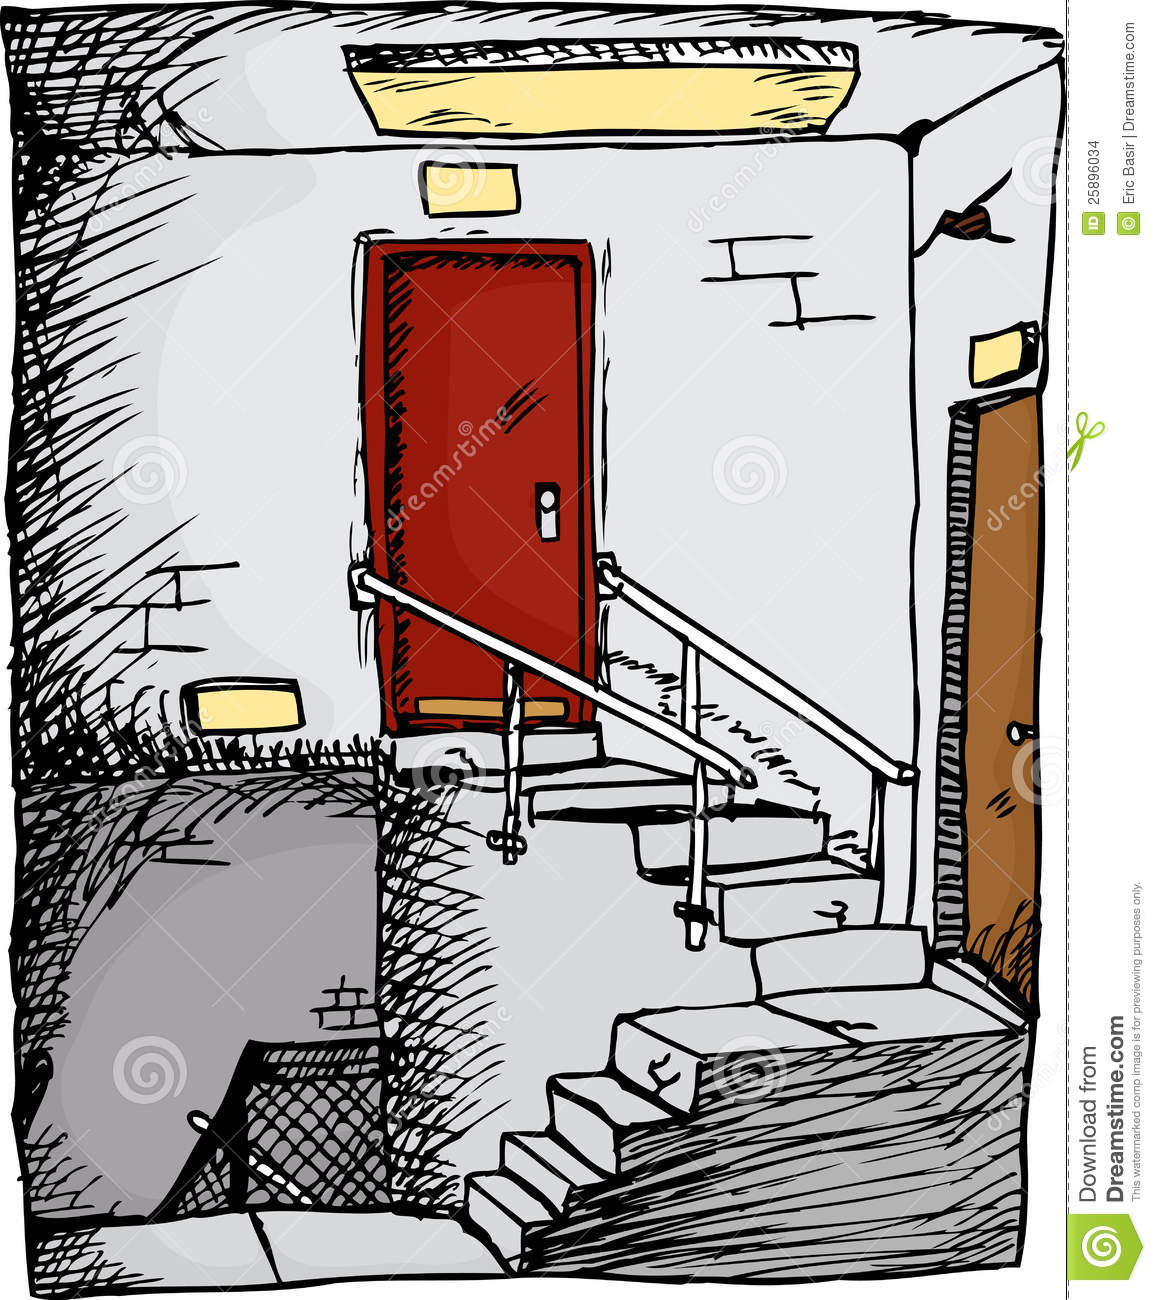 hight resolution of empty stairwell with two doors inside a building